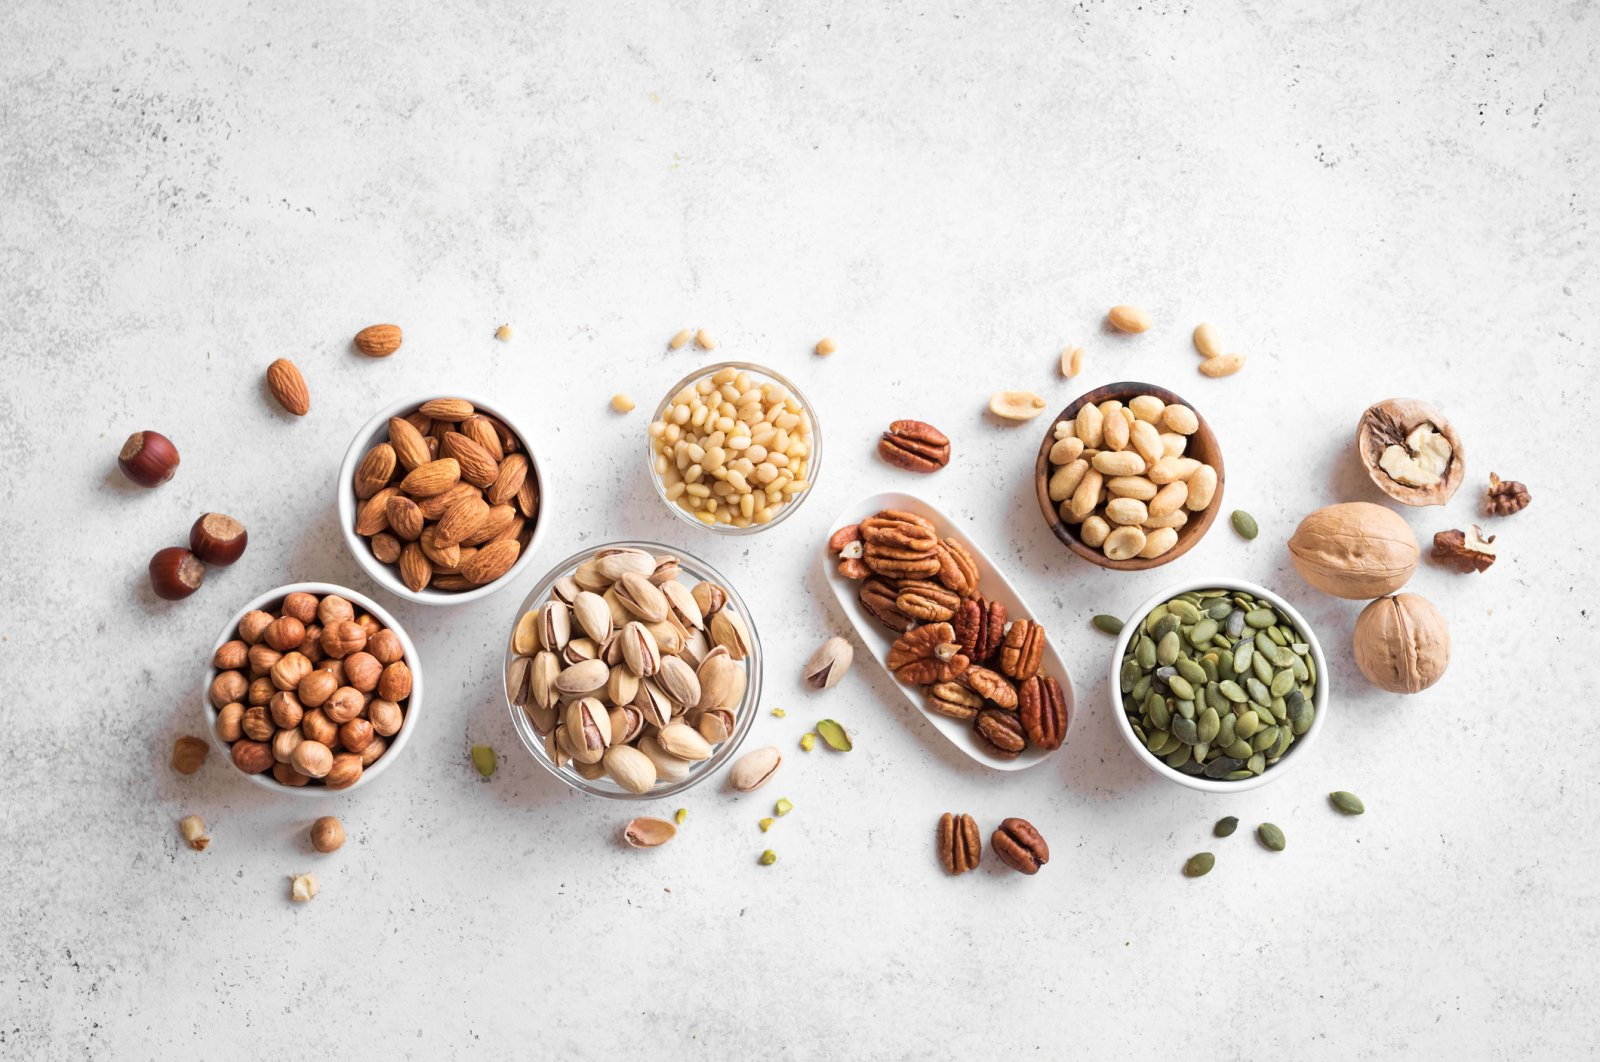 Nuts and oilseeds are great stress relievers and nutritional powerhouses. (iStock Photo)